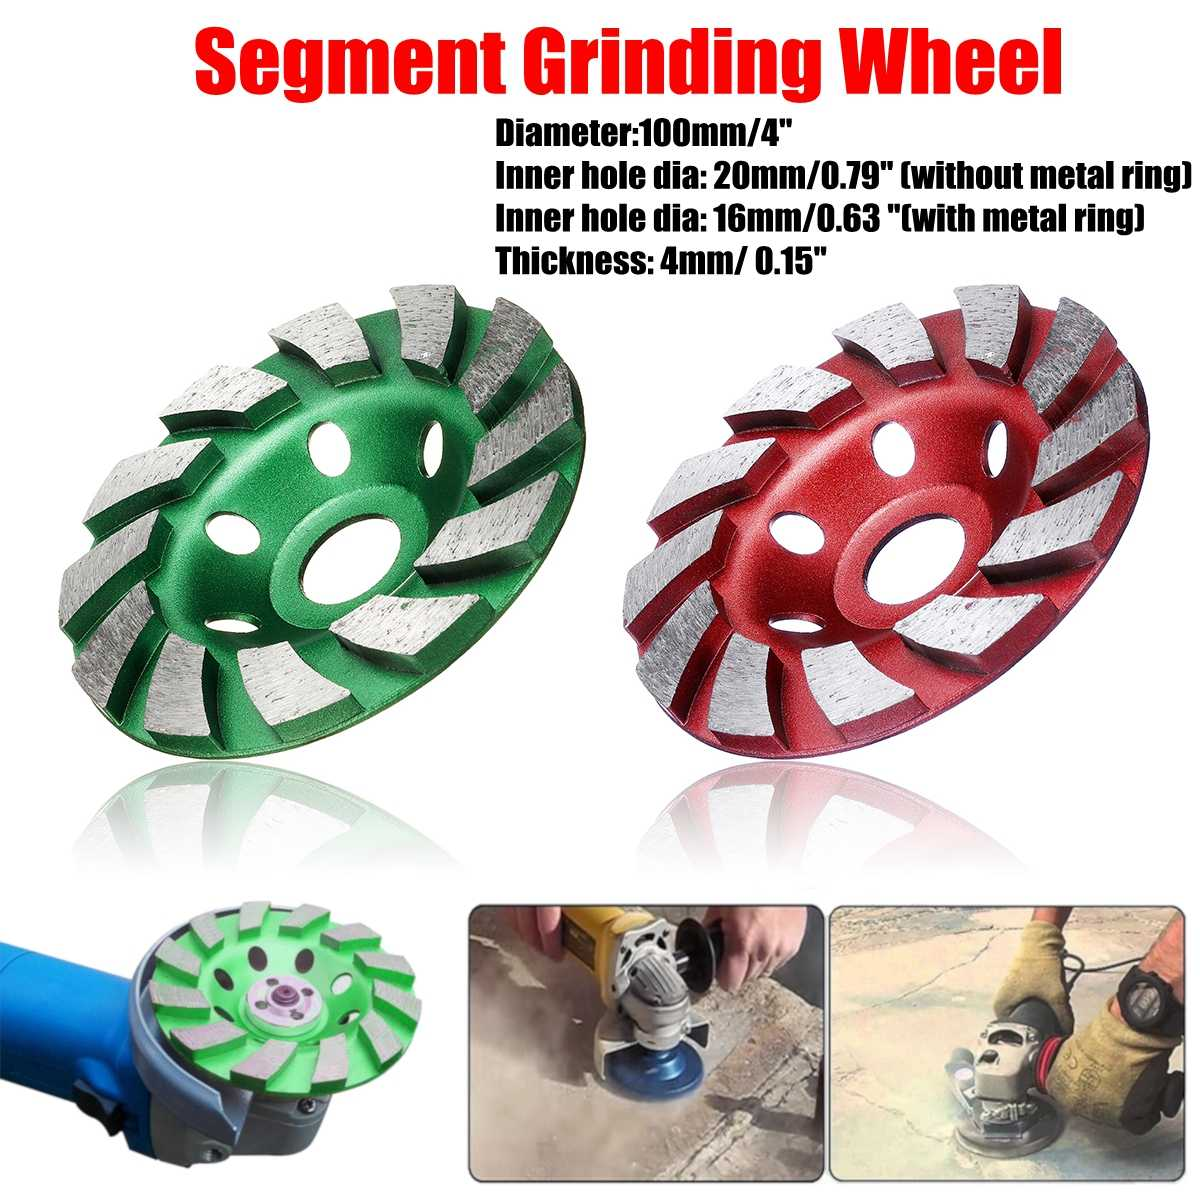 Marble Stone Granite 4 Inch Yosoo Health Gear Diamond Cup Grinding Wheel Row Concrete Grinding Wheel for Concrete 100mm